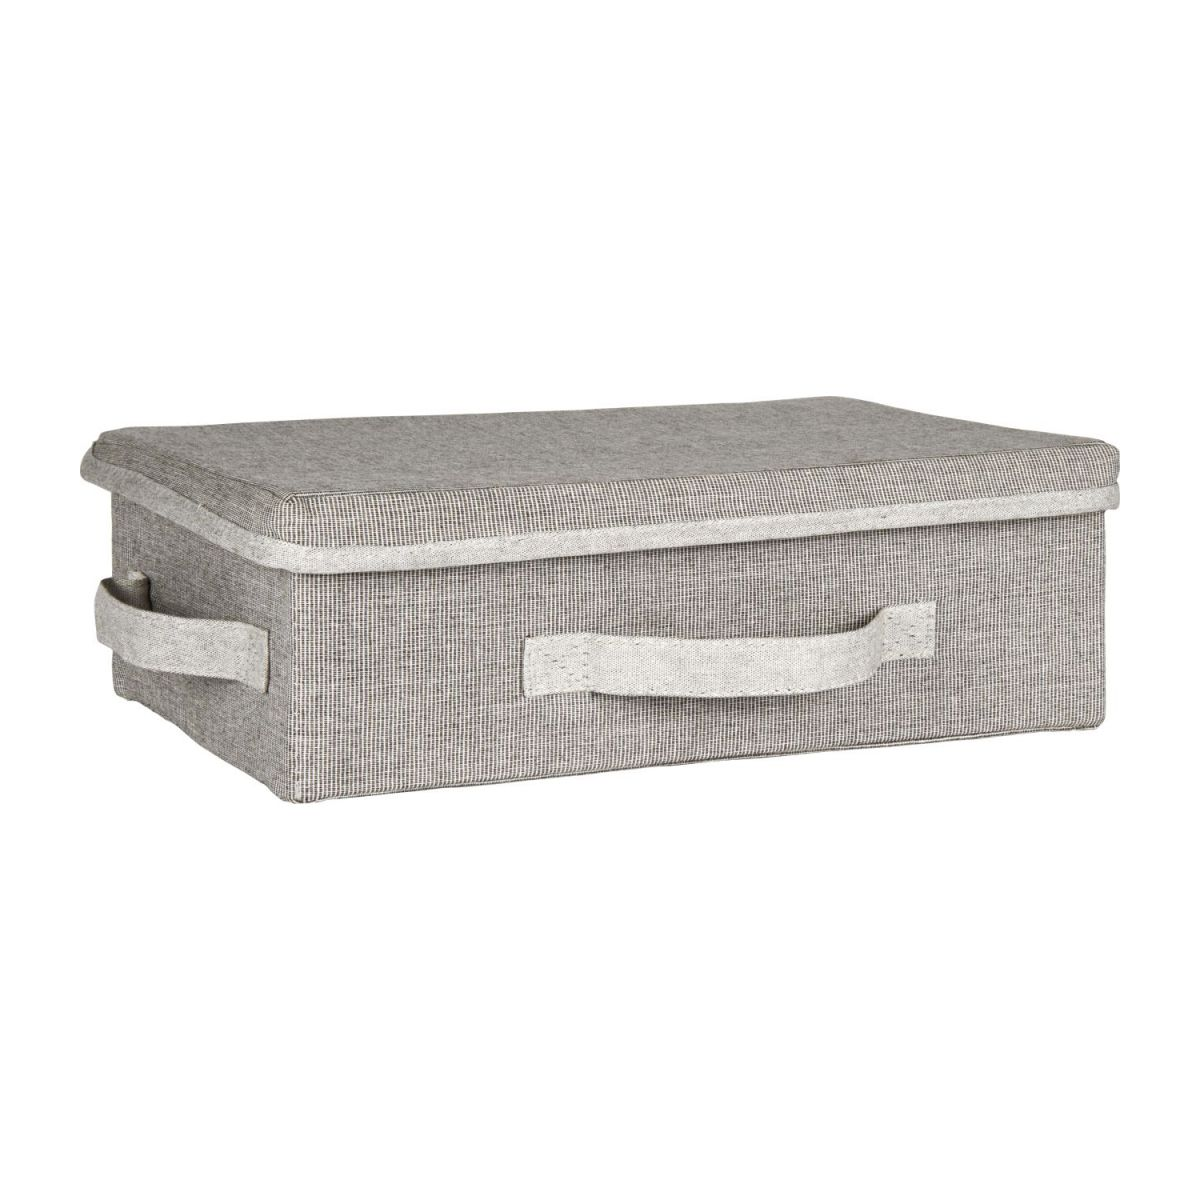 Small Storage basket, grey fabric and bamboo n°1